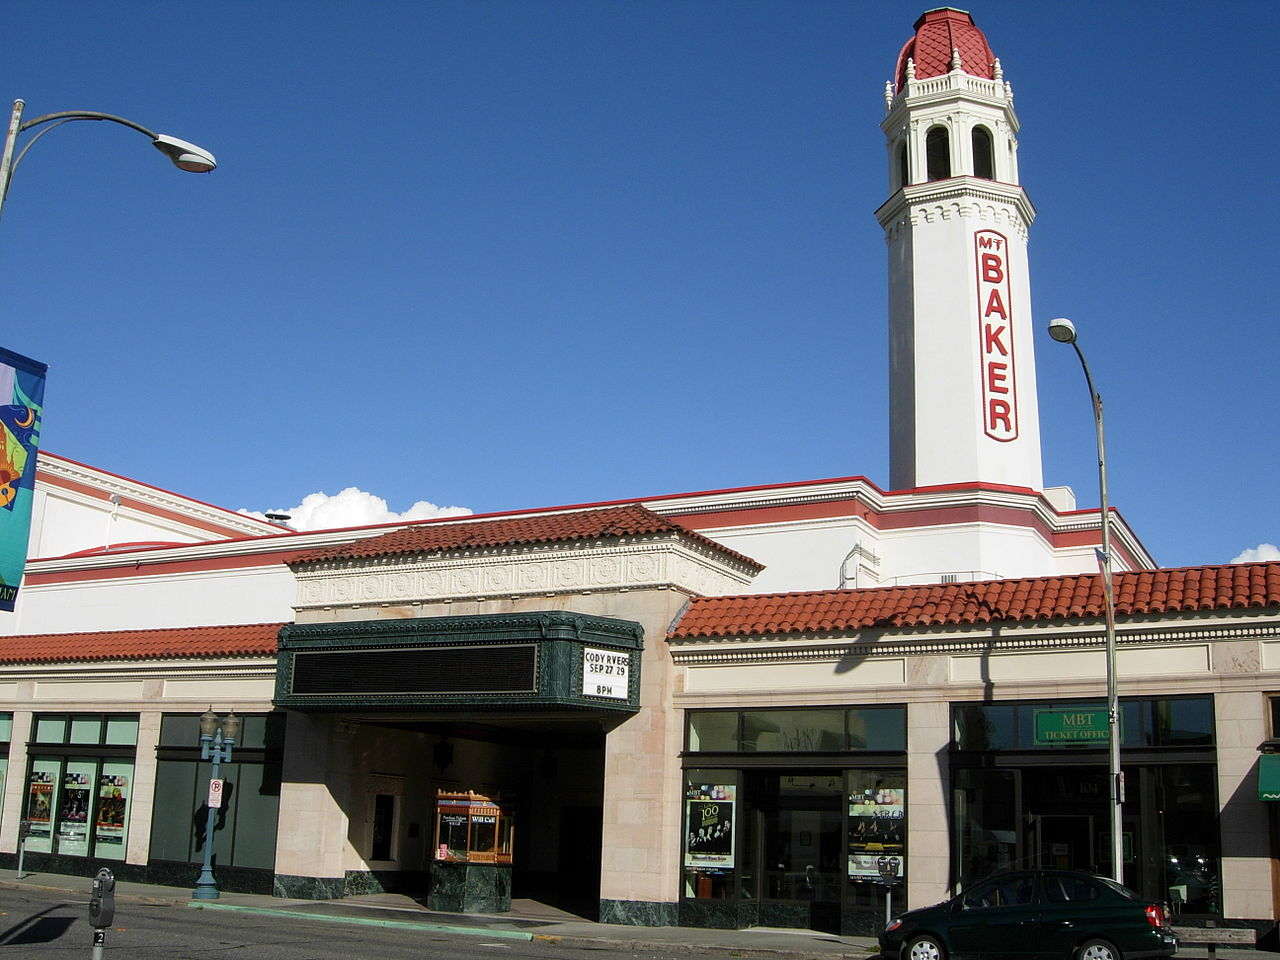 Mount Baker Theatre was built in 1927 and is the last movie palace still standing in the Pacific Northwest.